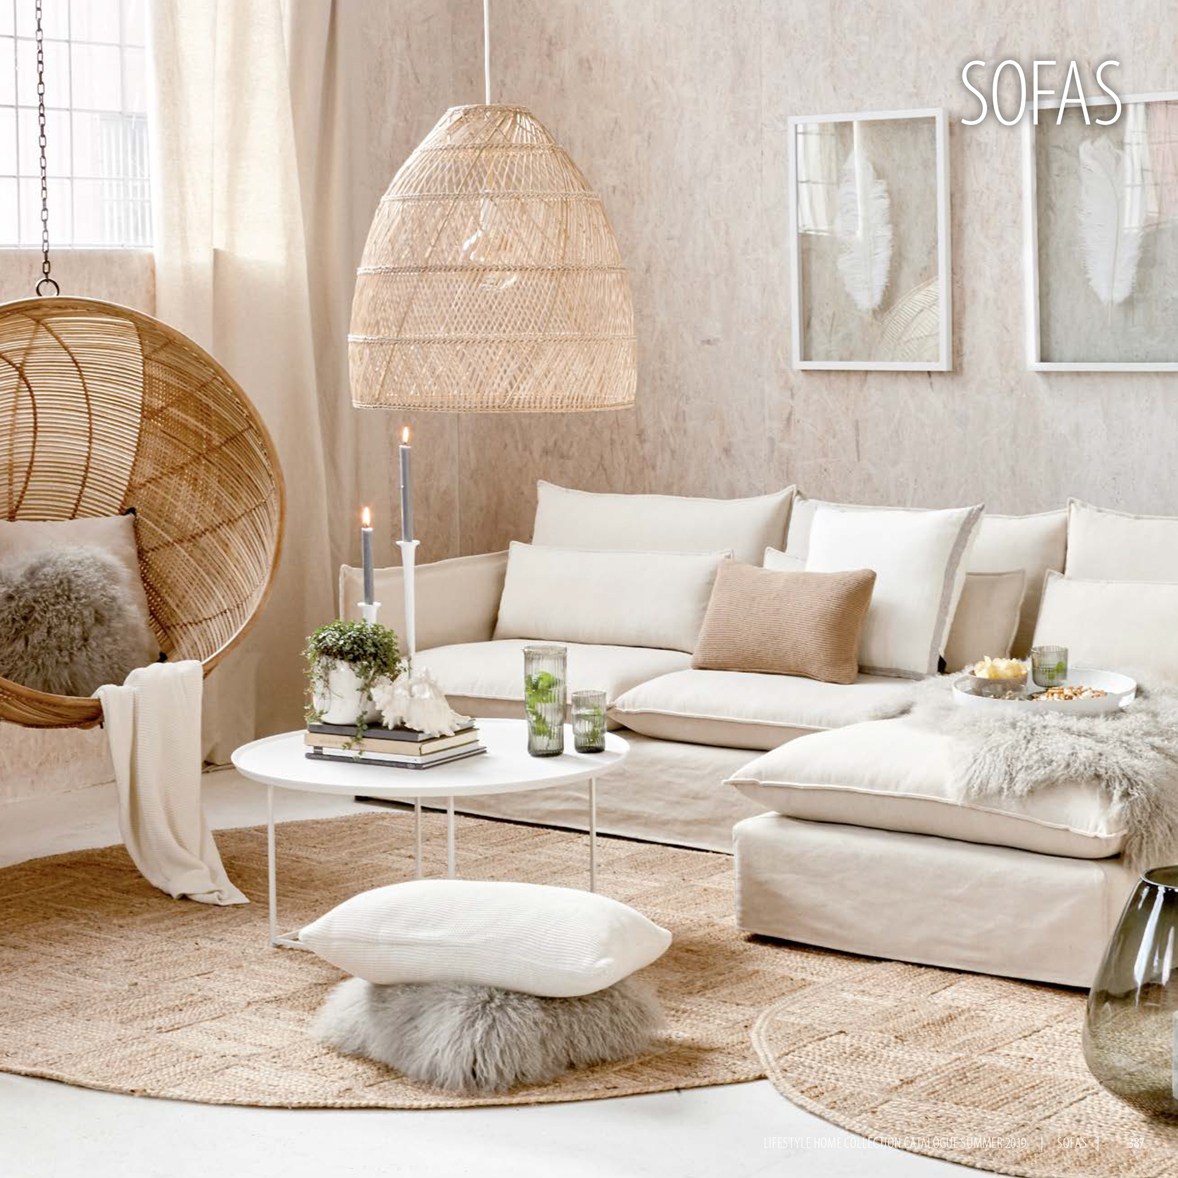 Sofas » LifeStyle - Home Collection